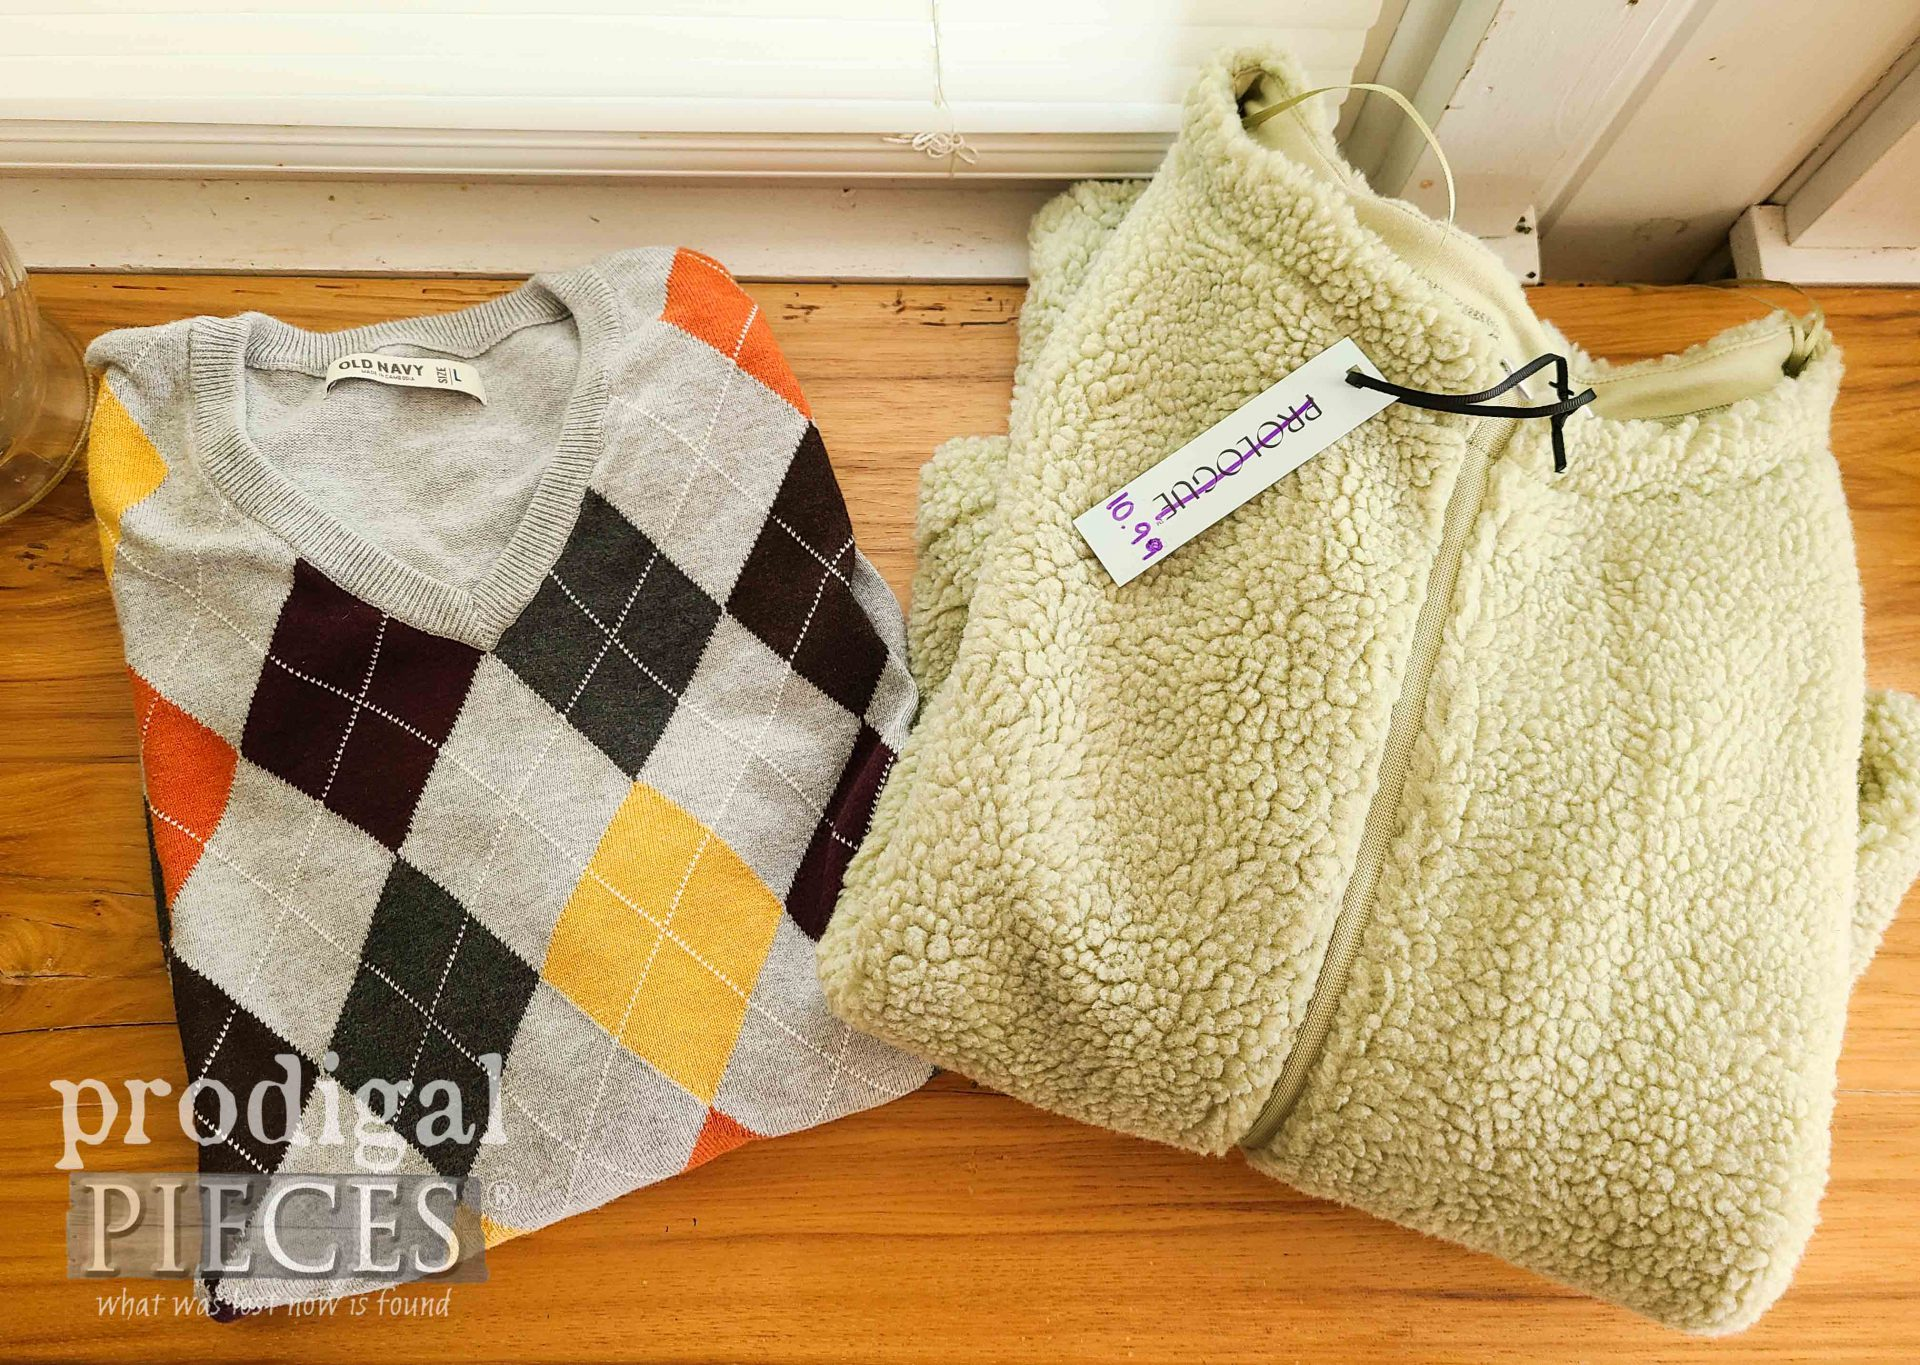 Thrifted Sweaters Before Upcycle by Prodigal Pieces | prodigalpieces.com #prodigalpieces